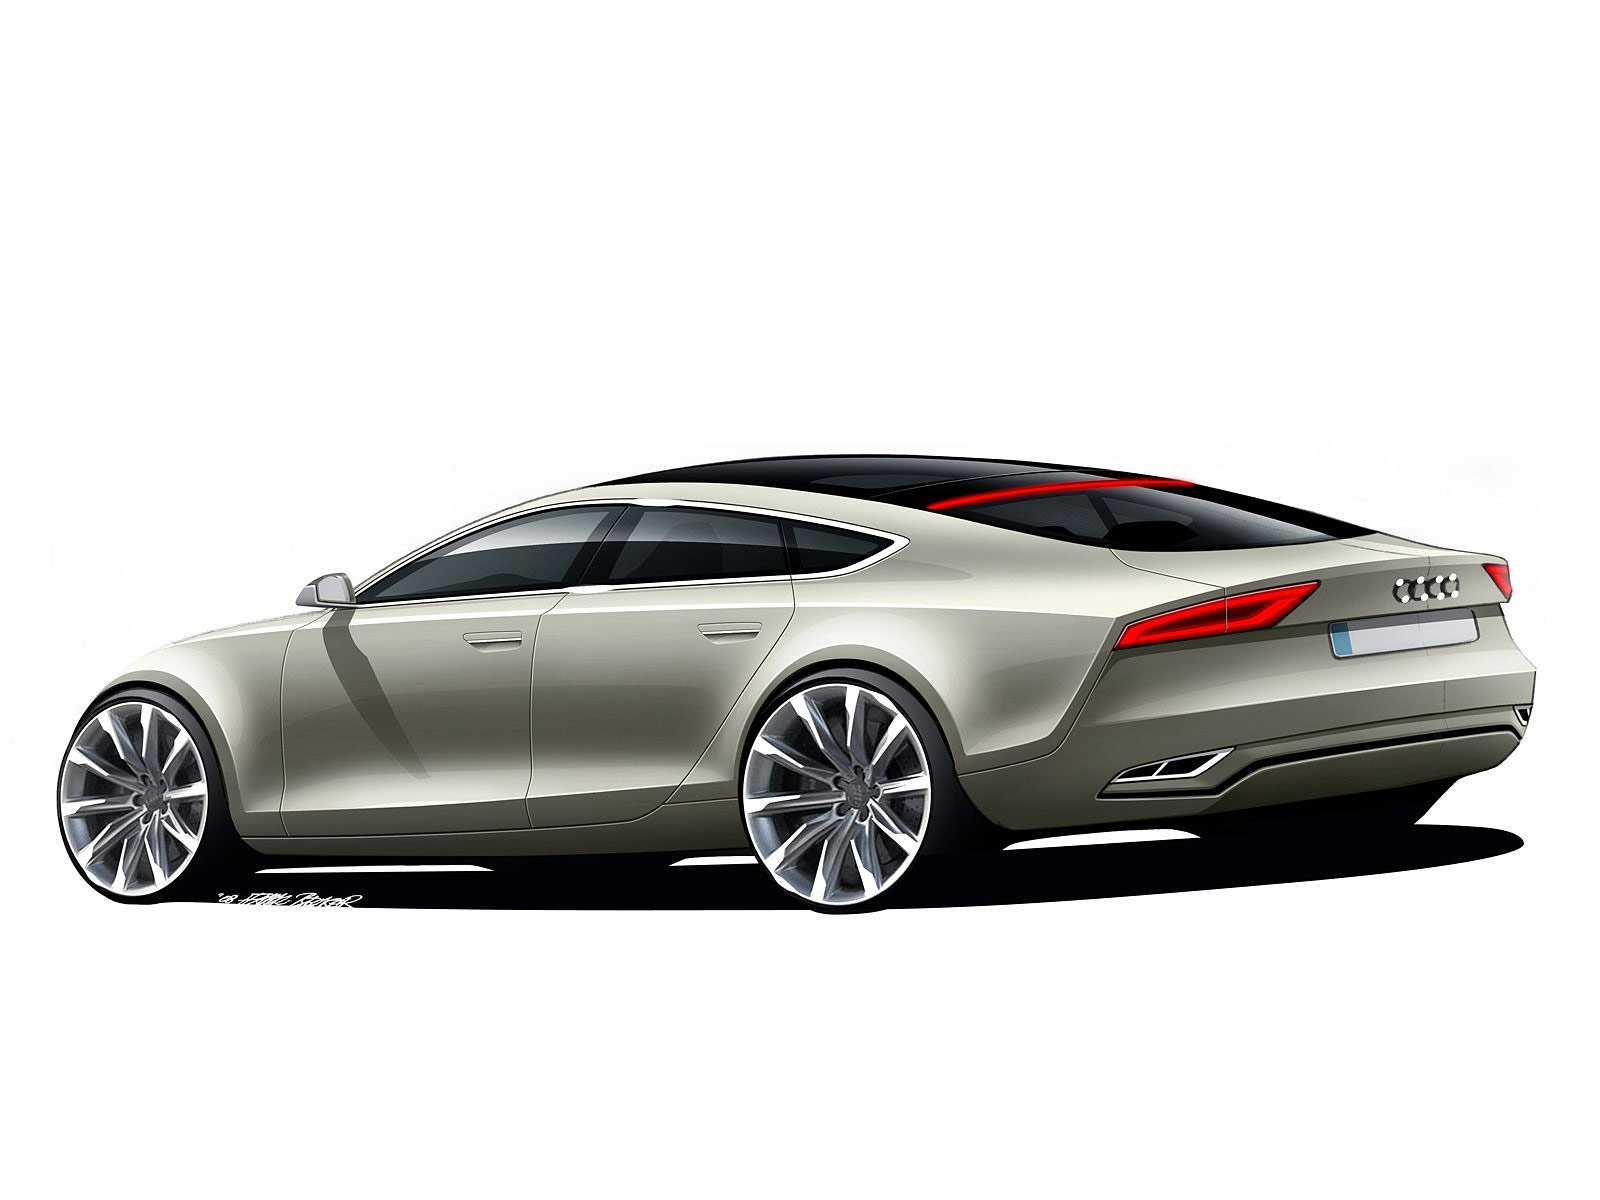 Latest 2009 Audi Sportback Concept Car Pictures Insurance Free Download